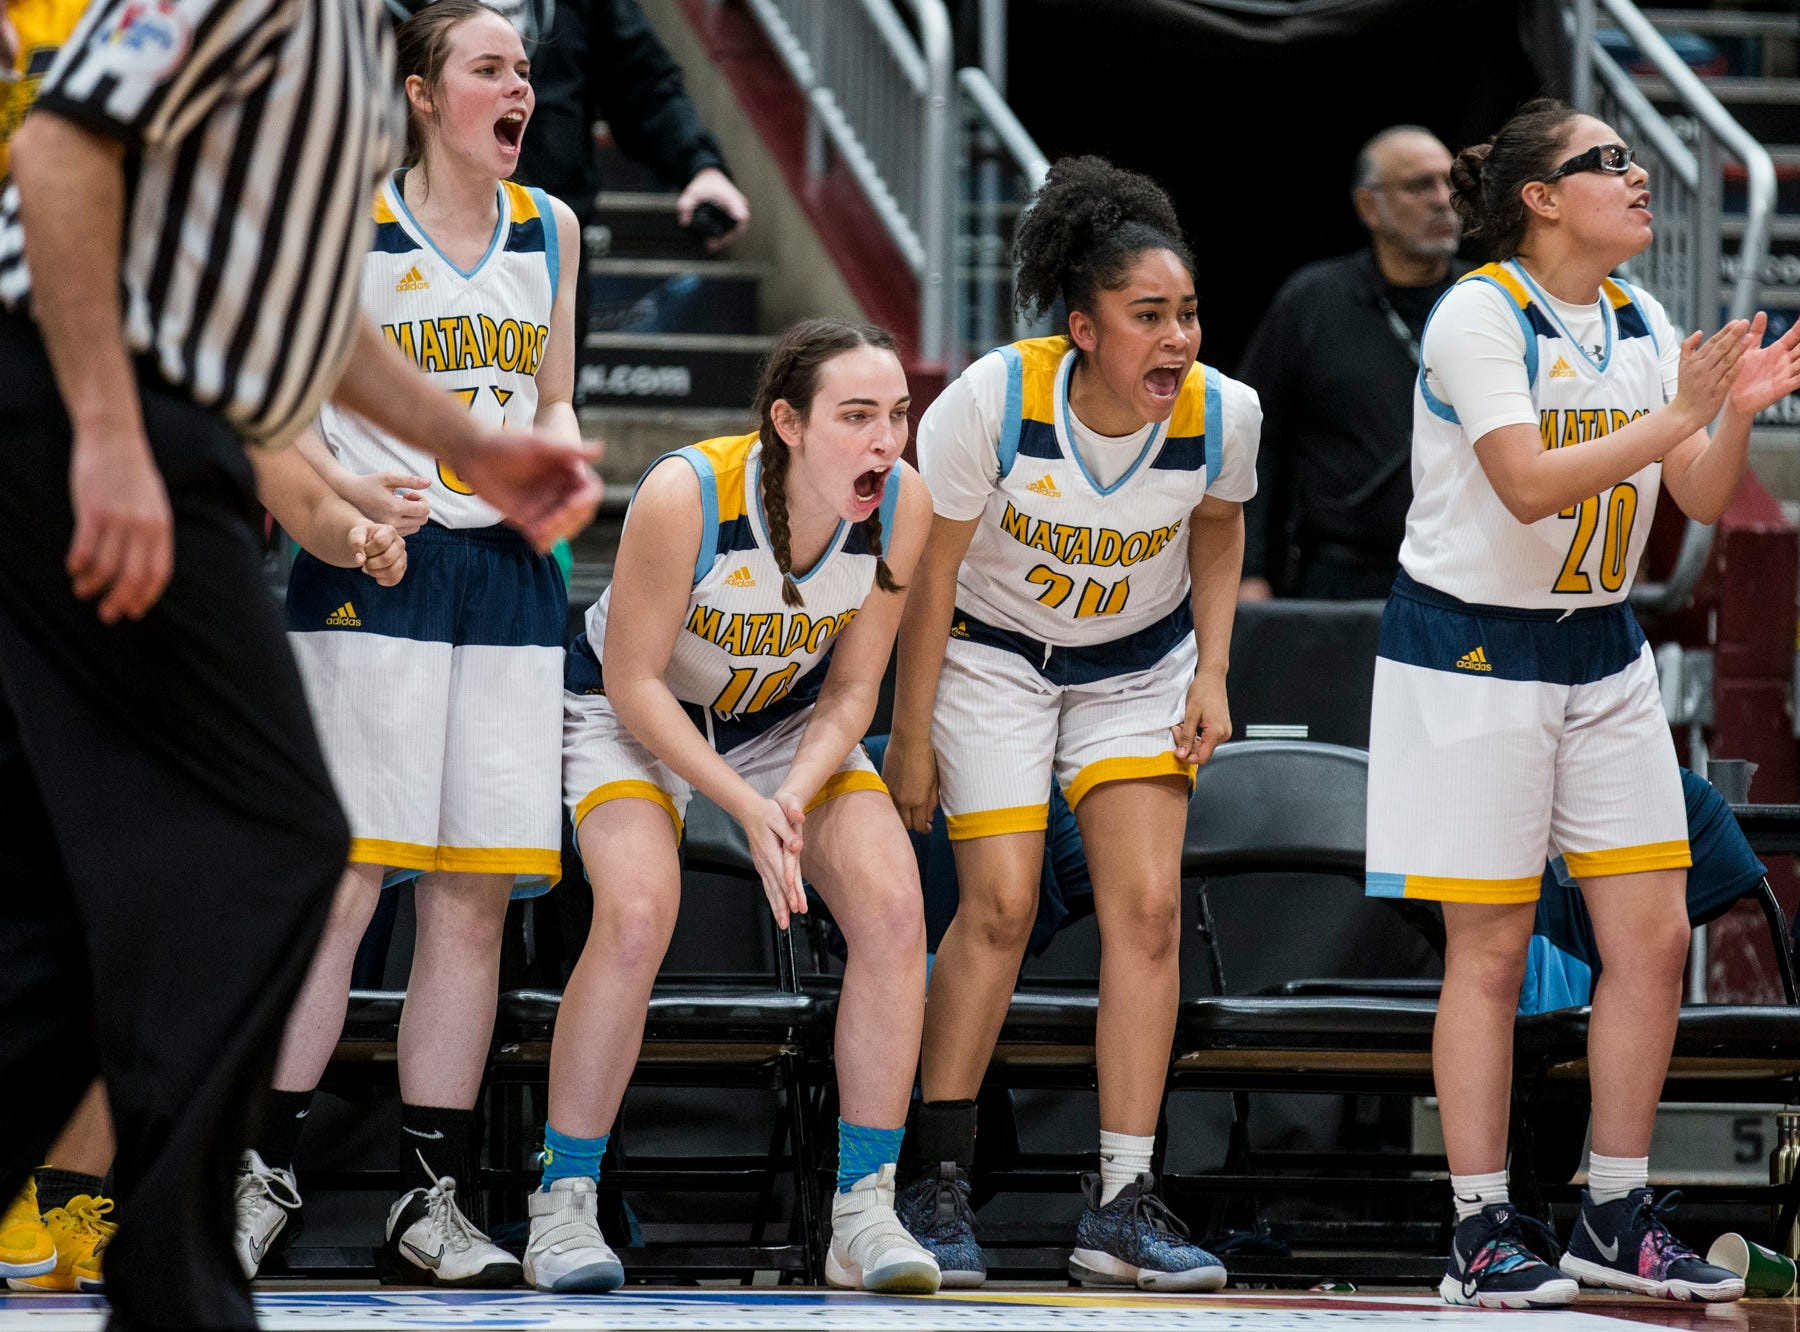 Shadow Mountain's bench cheers during the 4A girls basketball championship against Seton Catholic on Saturday, Feb. 23, 2019, at Gila River Arena in Glendale, Ariz.